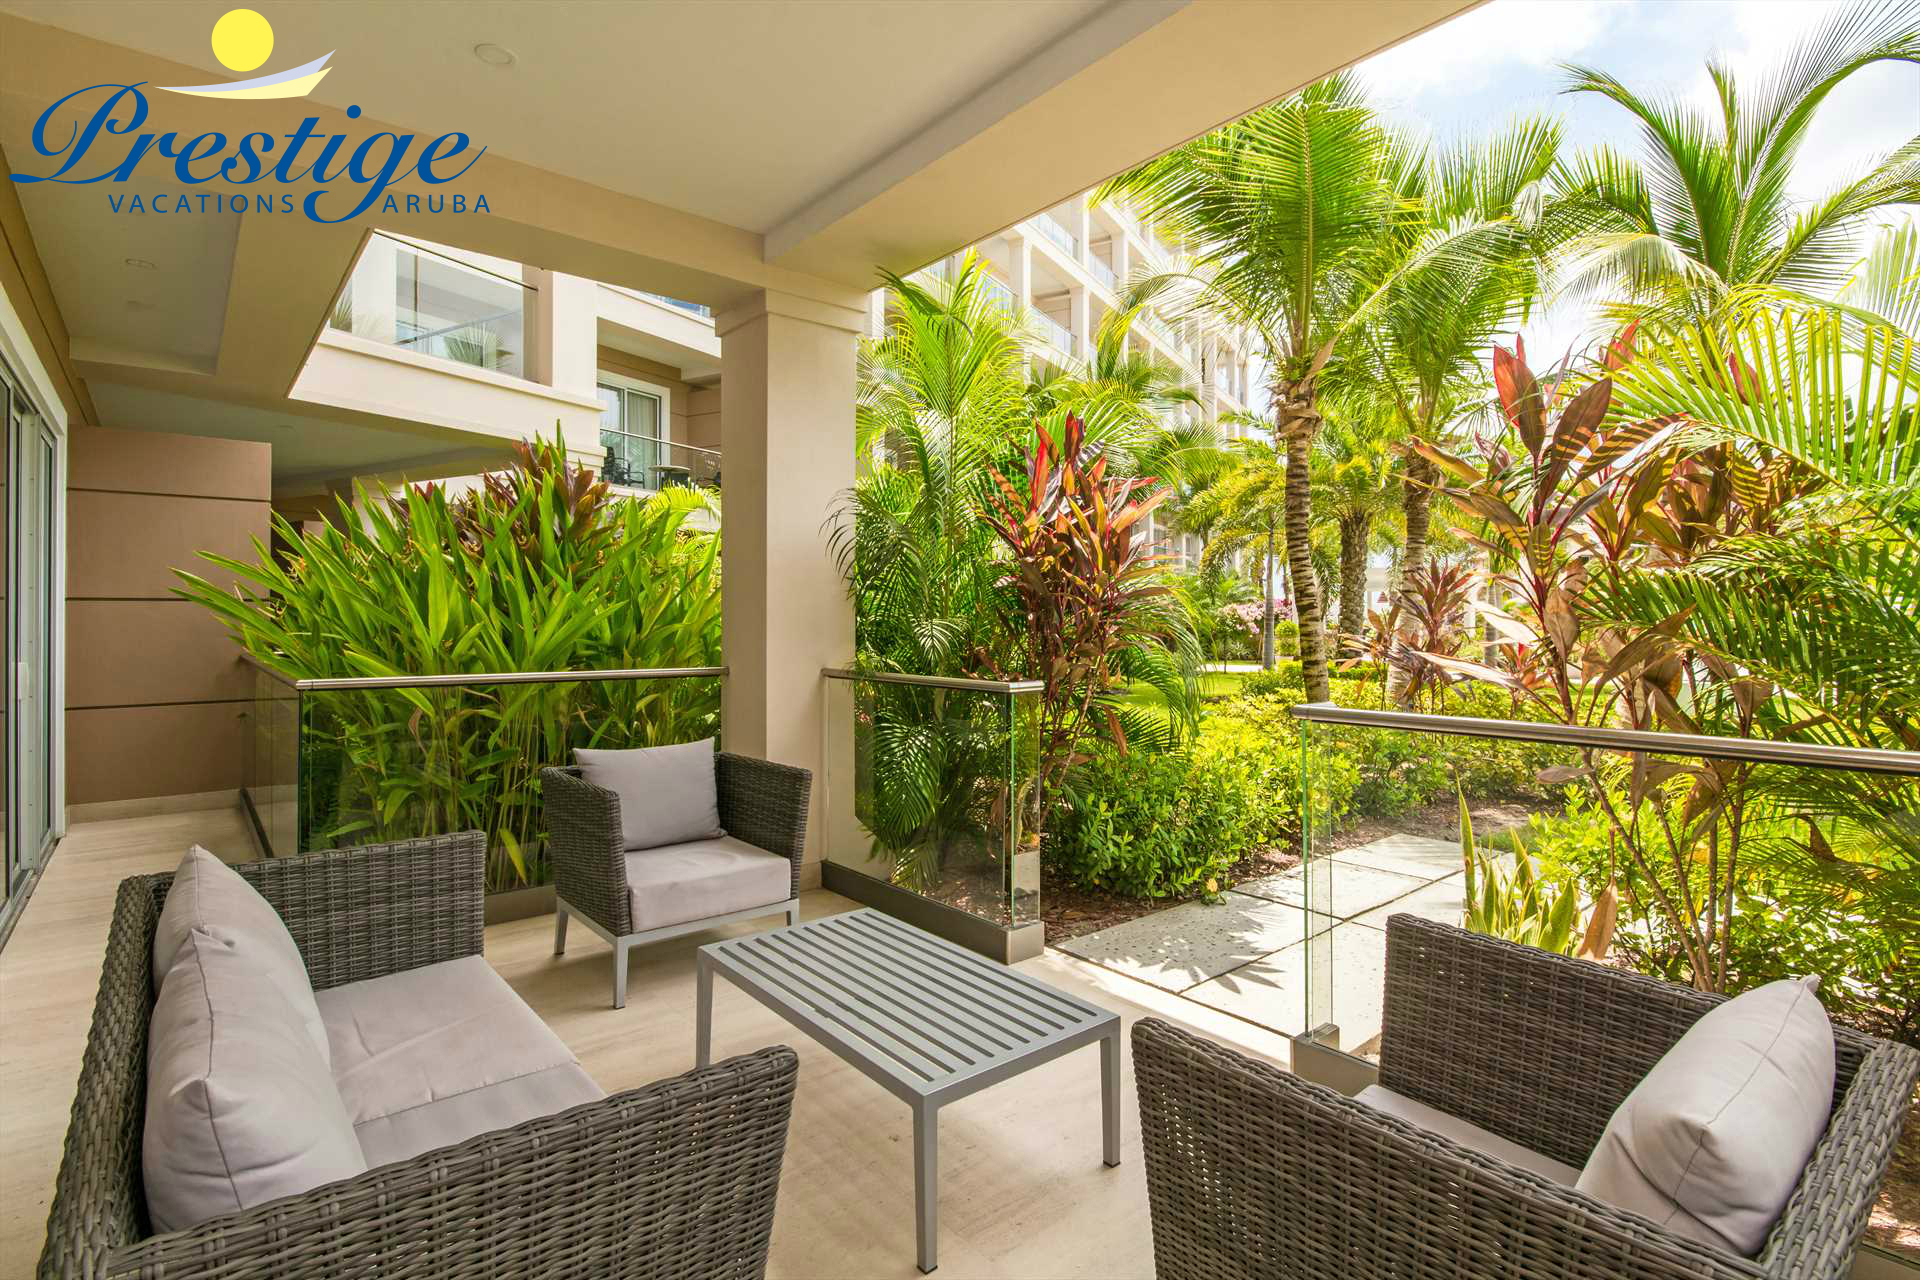 Easy access to and from the resort pool and outdoor areas